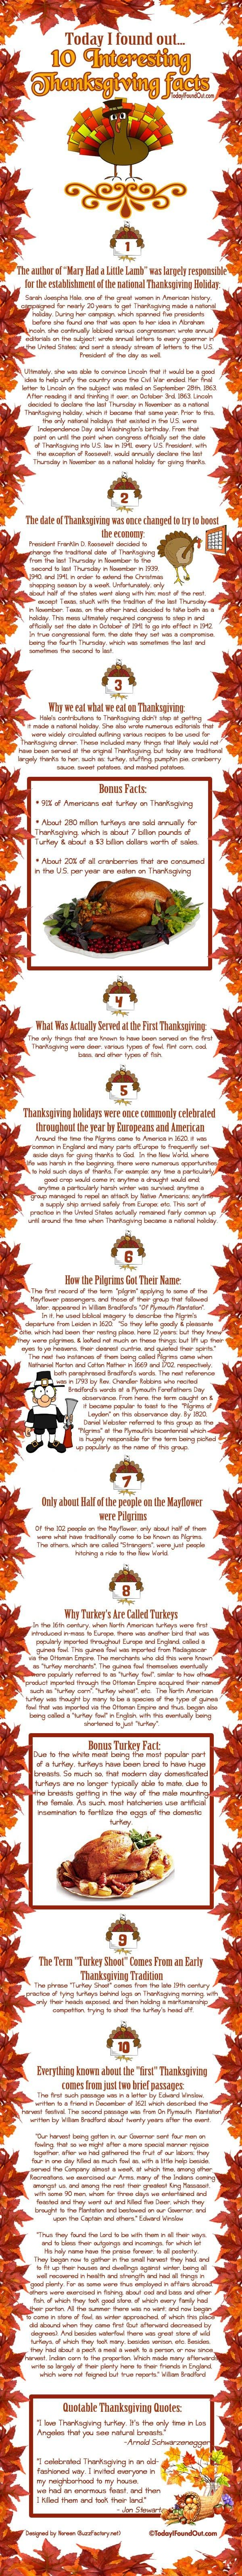 10 interesting thanksgiving facts infographic